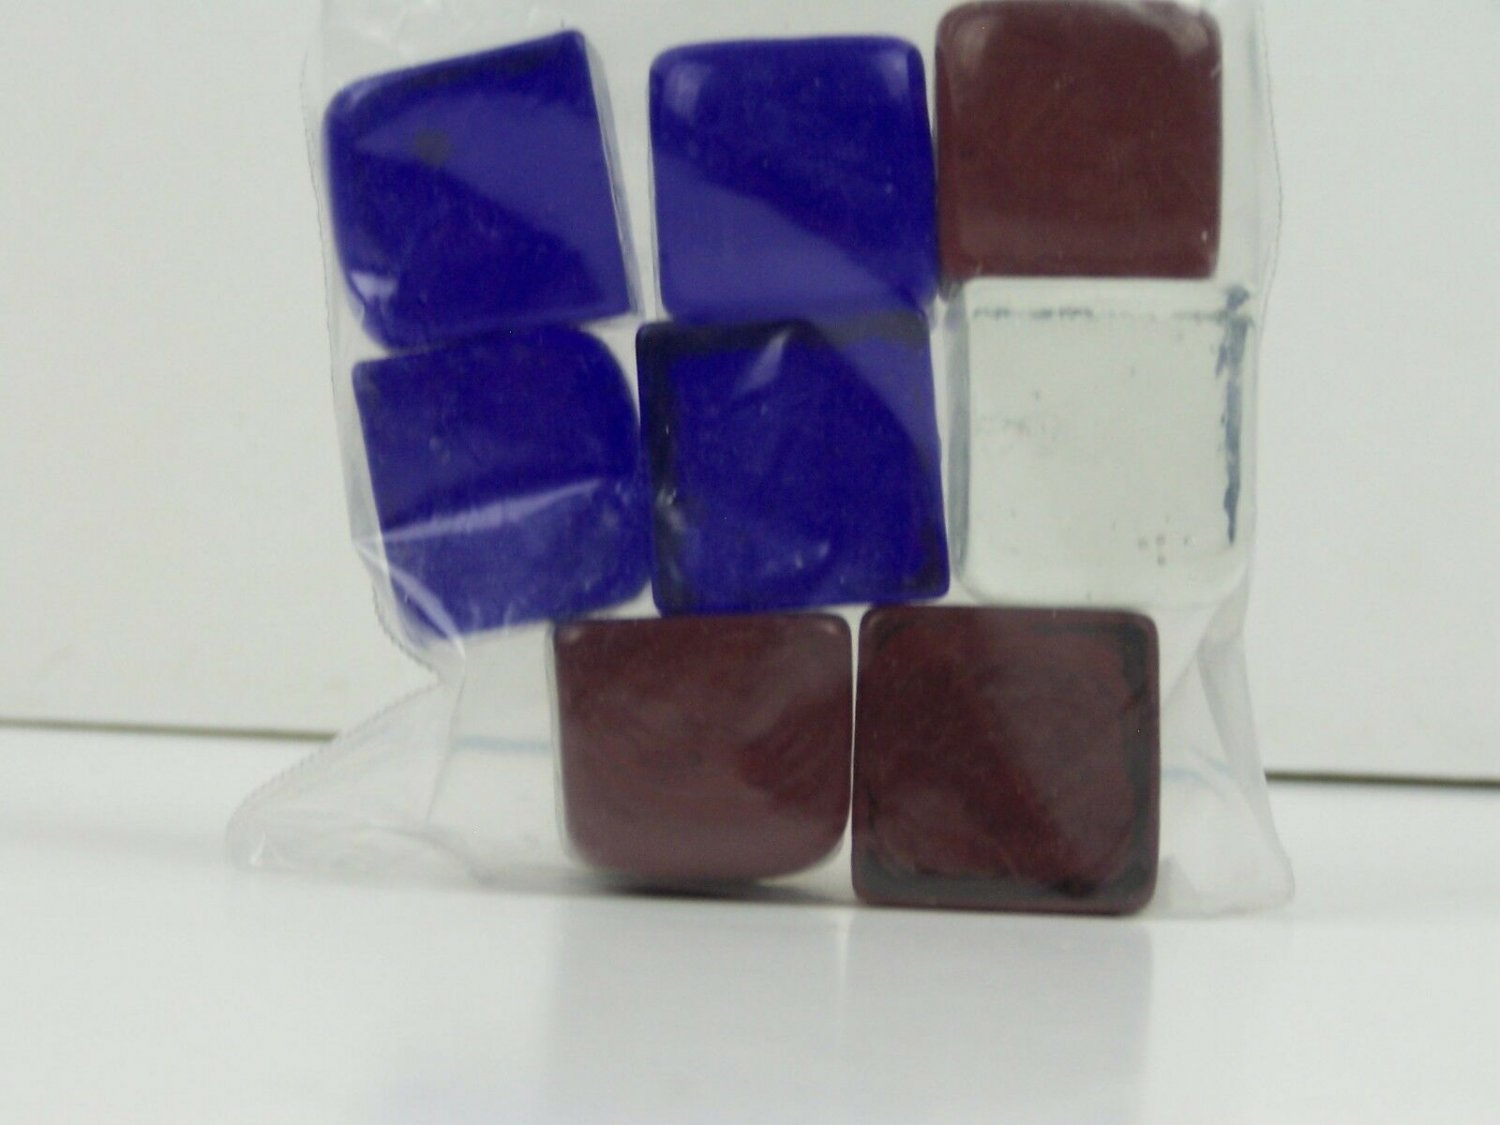 Bag Cube Color Glass Gems Pebbles Stones Flat Marbles for Vase Accents & Crafts